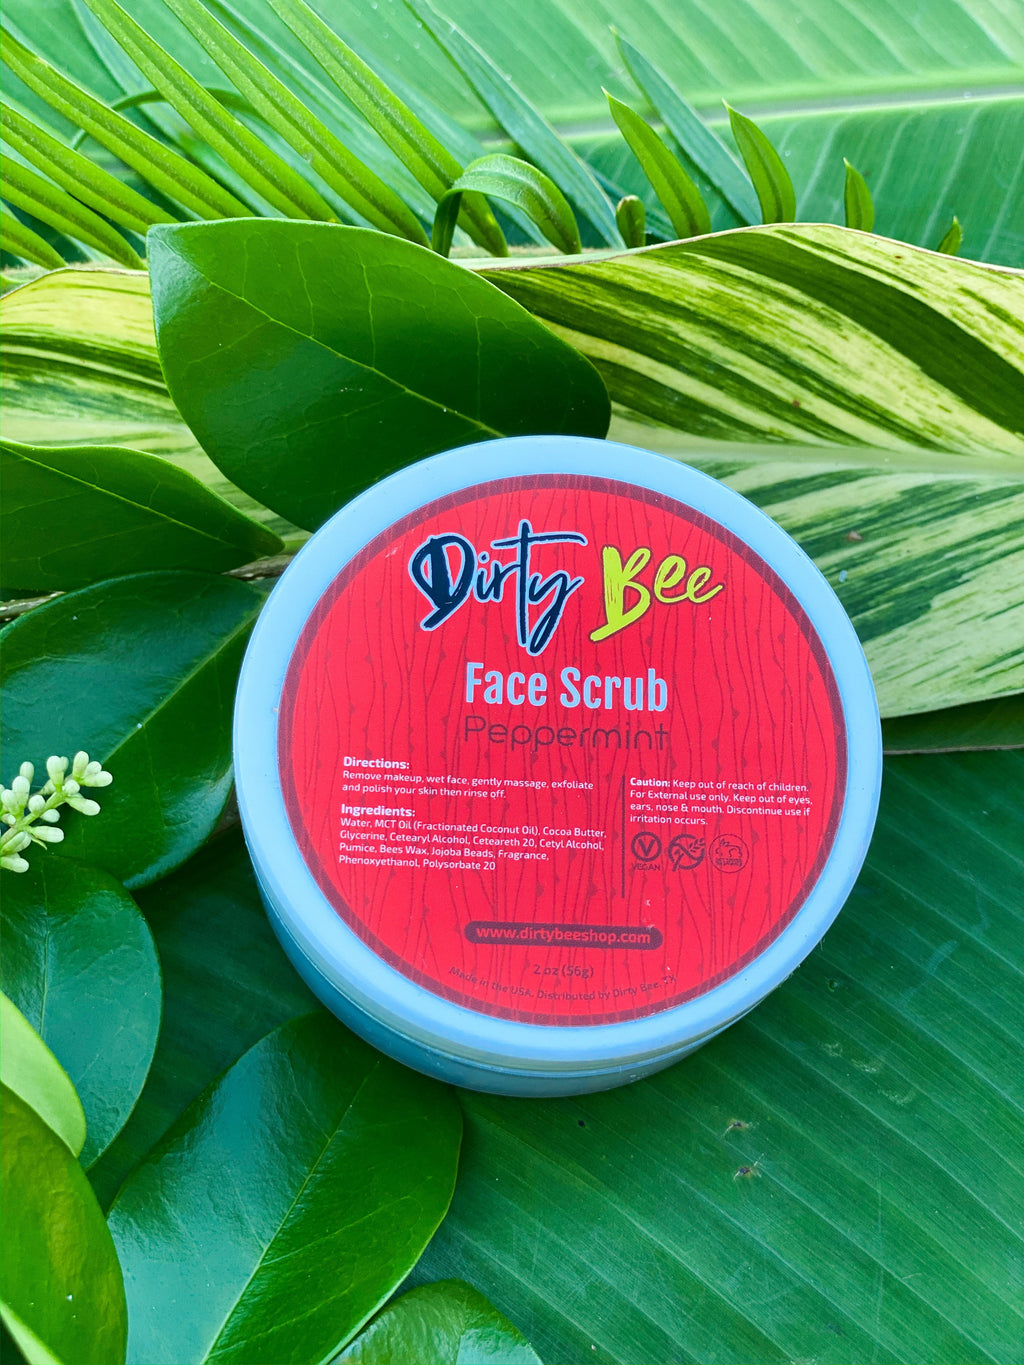 Peppermint Face Scrub - On Hand-Bath & Body, Dirty Bee, Dropship, face, Face Scrub, Made in the USA, Peppermint-Womens Artisan USA American Made Clothing Accessories